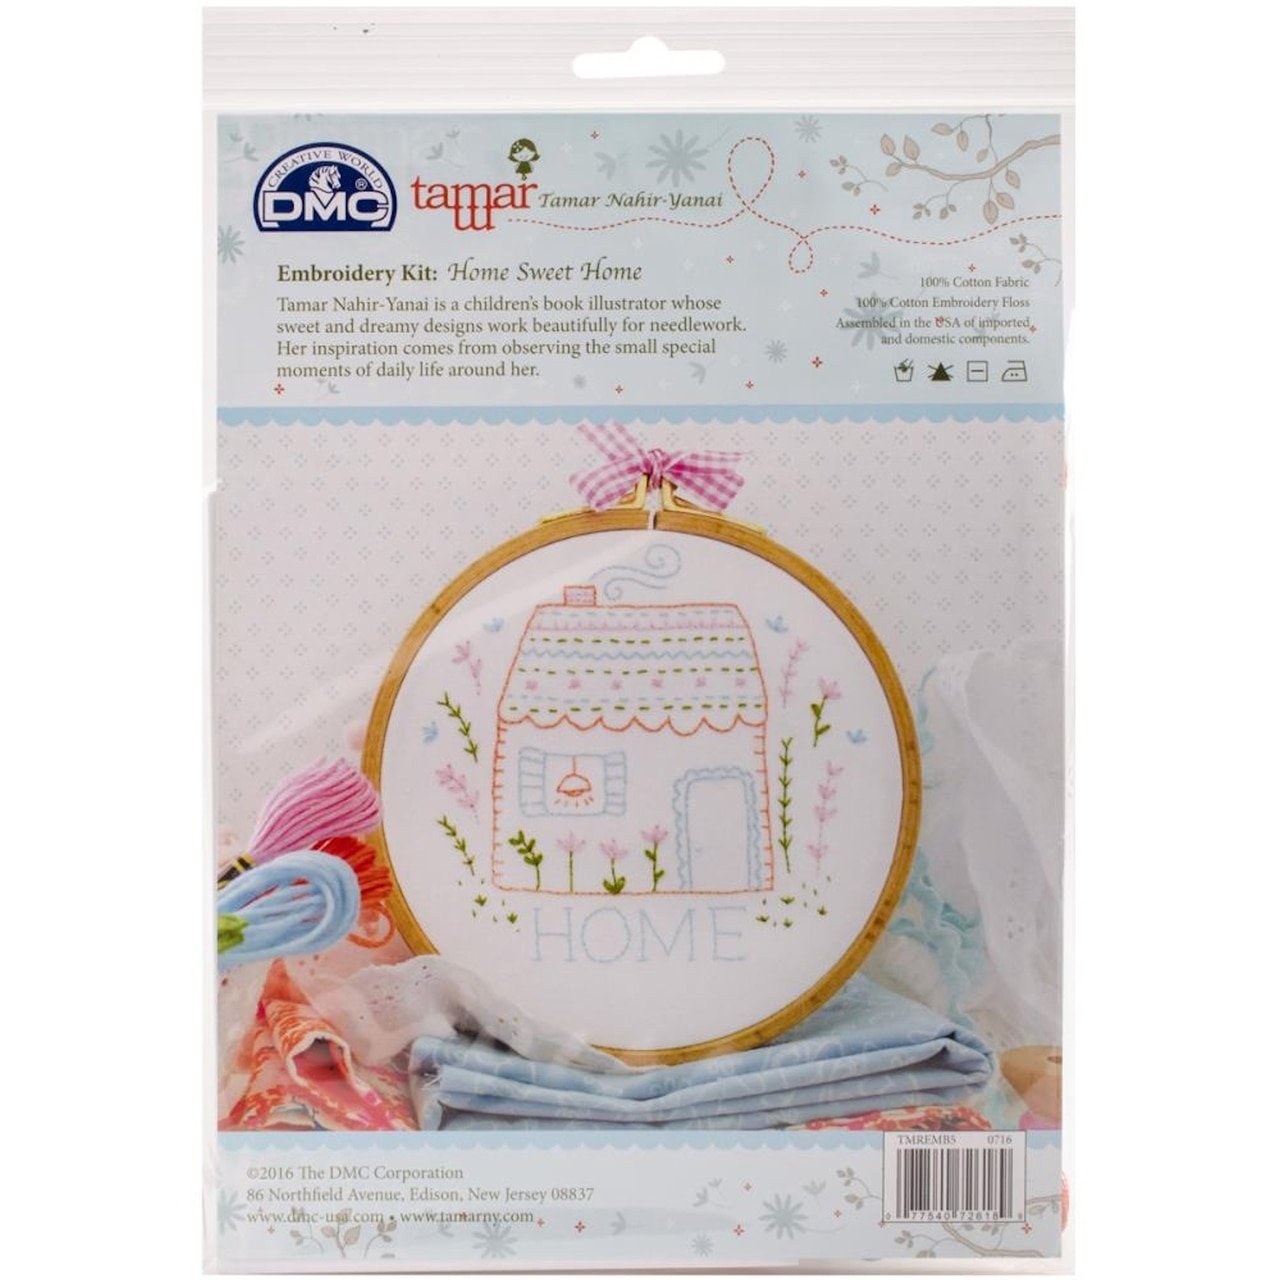 Home Sweet Home (Tamar Collection) Embroidery Kit-8X8 by DMC